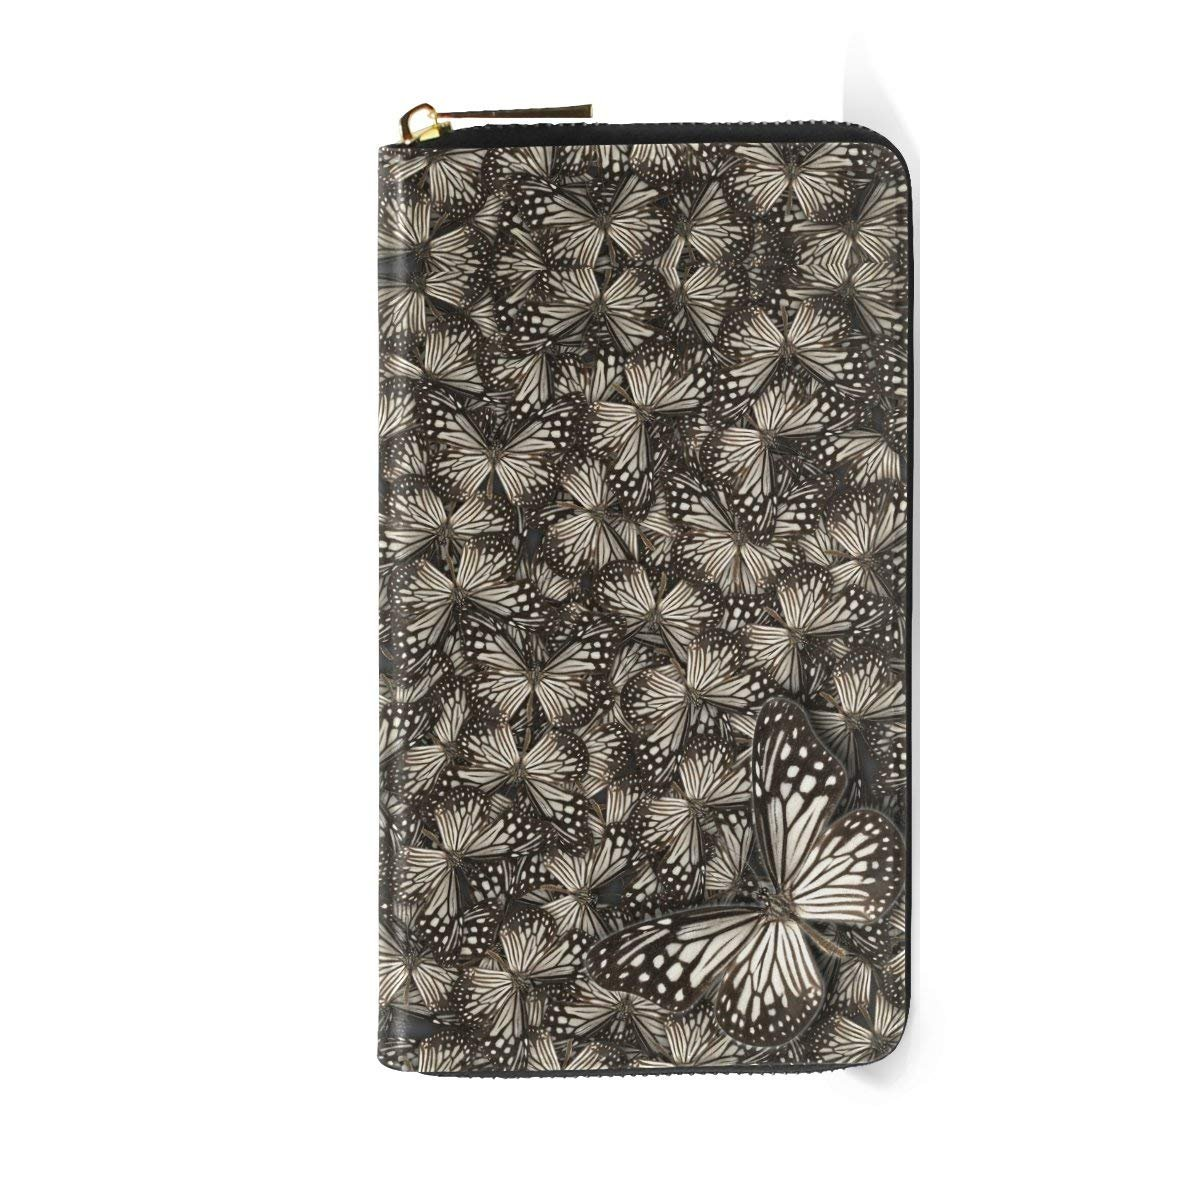 Zip Around White Tiger Butterflys Leather Clutch Purses Travel Passport Wallet Handbag